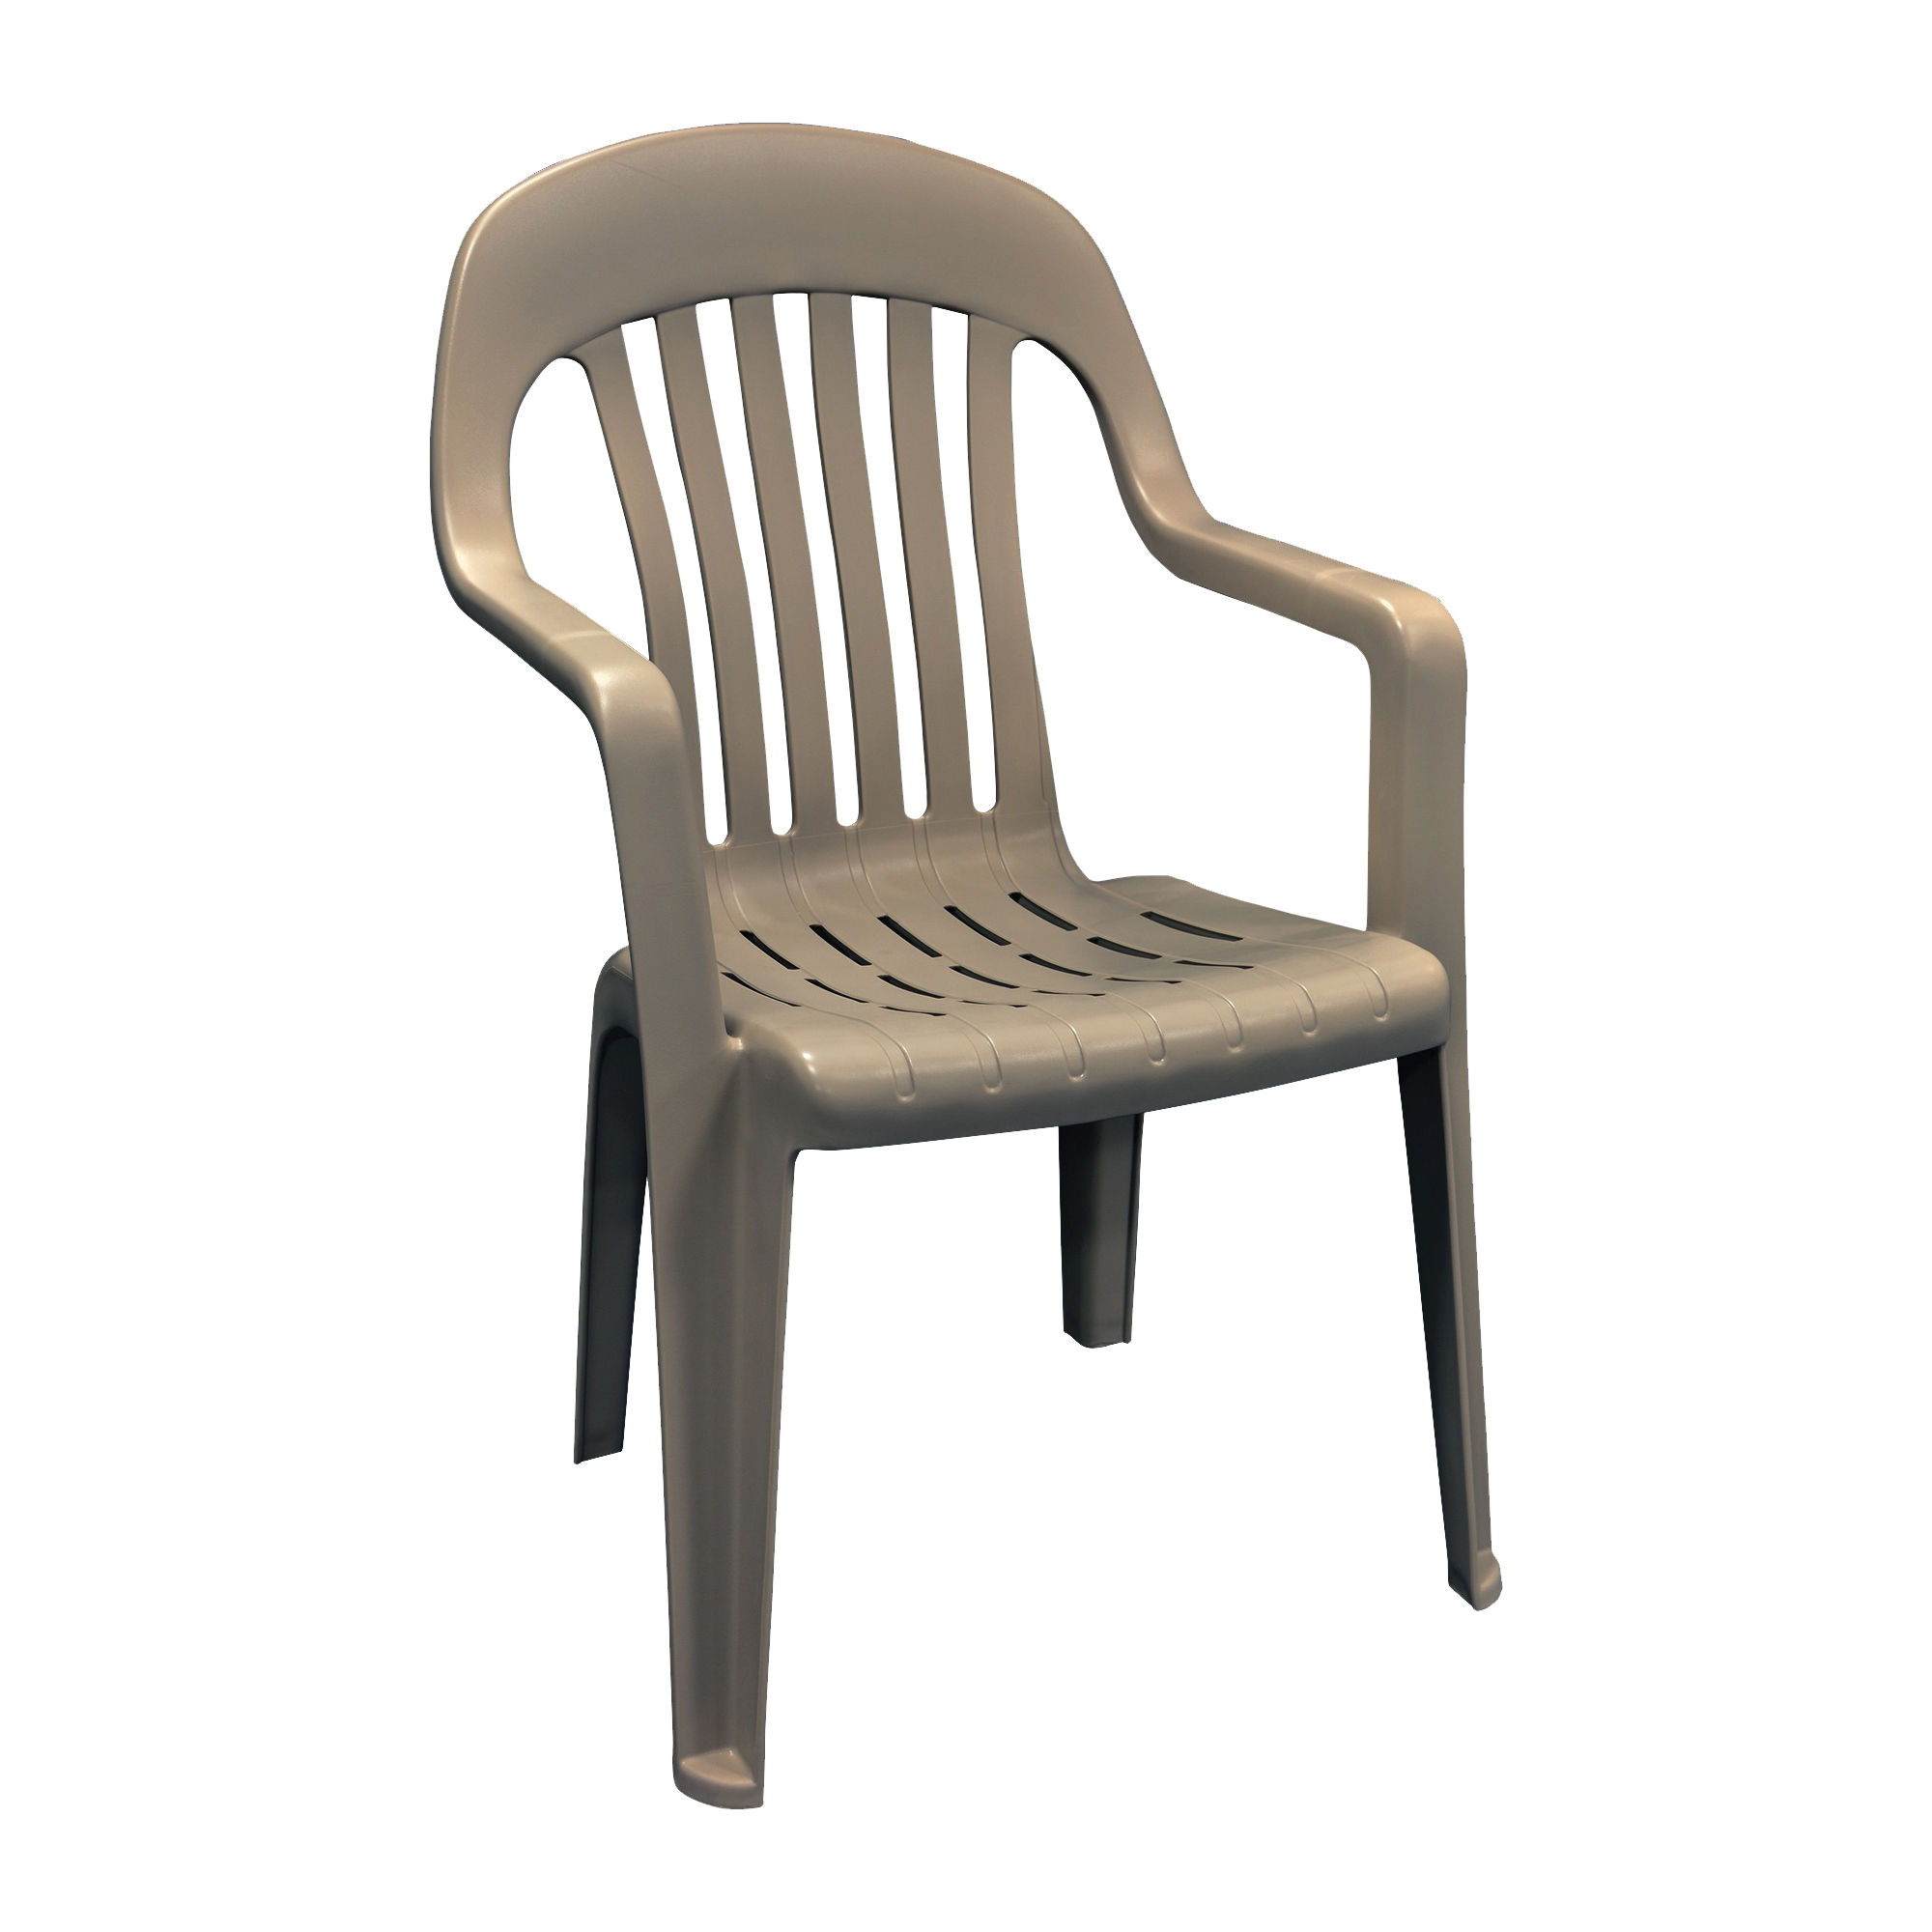 Picture of Adams 8254-96-3700 High-Back Chair, 22 in W, 23 in D, 36 in H, Polypropylene Frame, Brown Frame